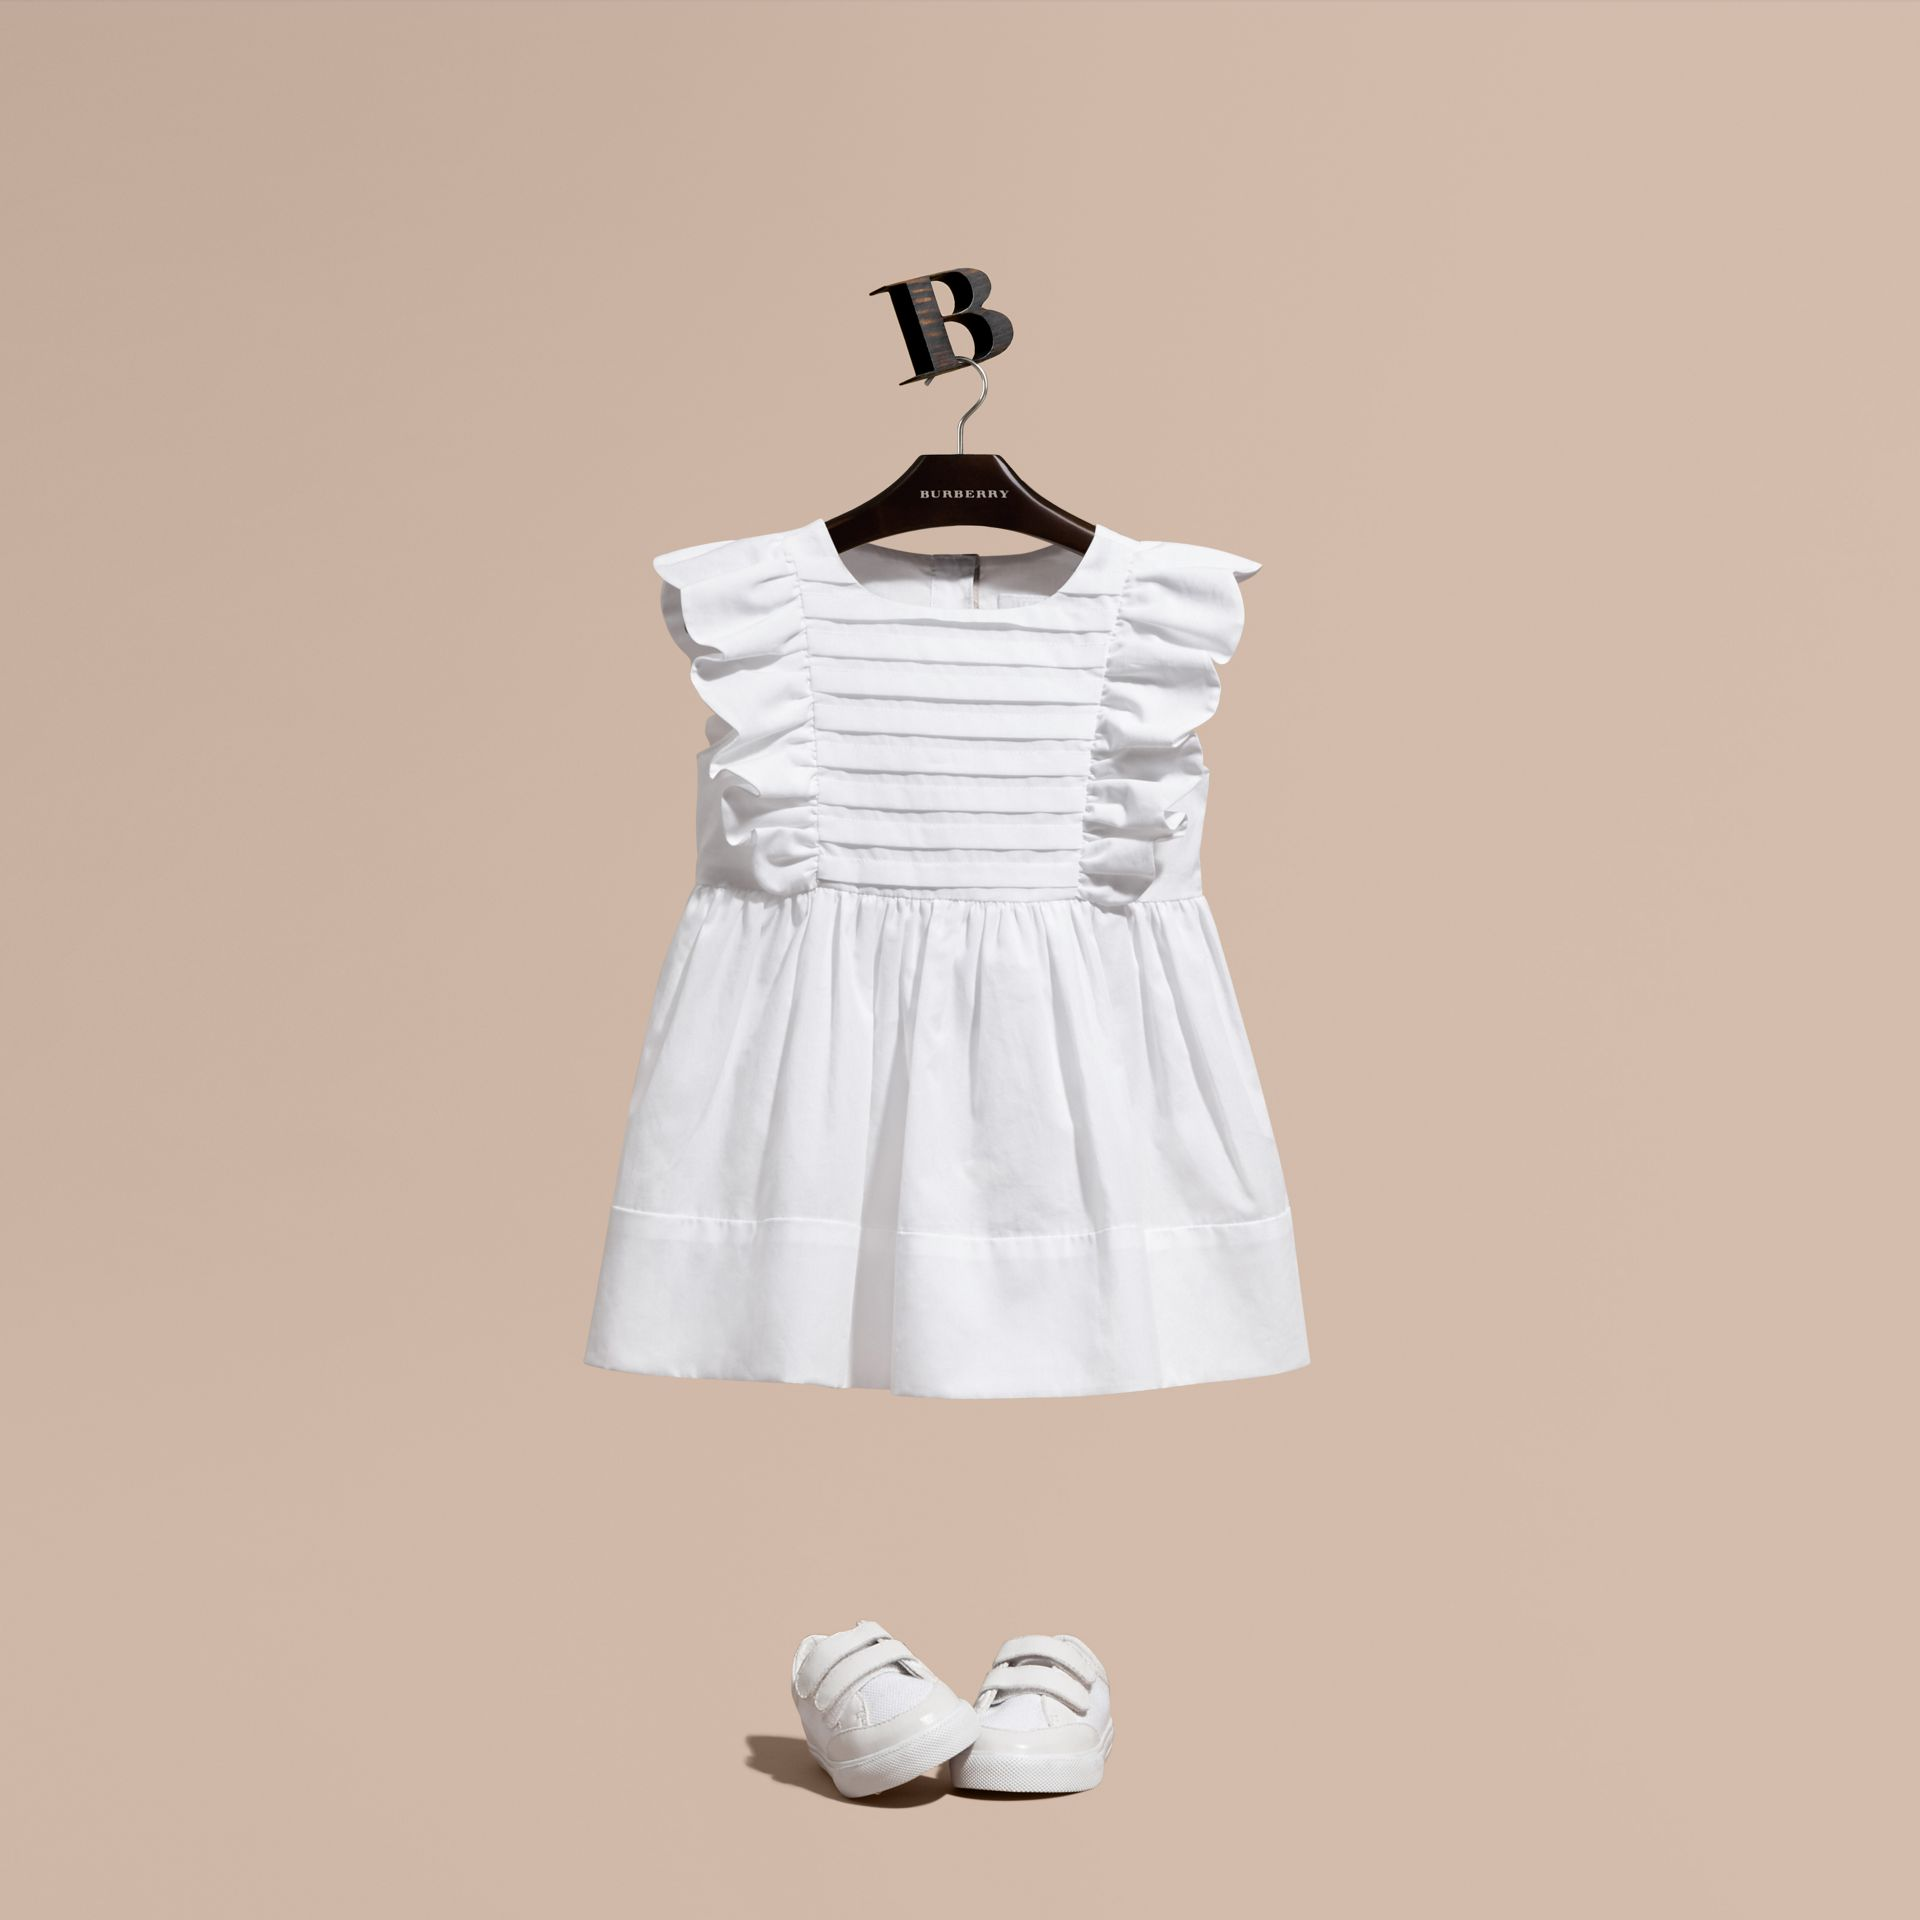 Ruffle and Pleat Detail Cotton Dress | Burberry - gallery image 1